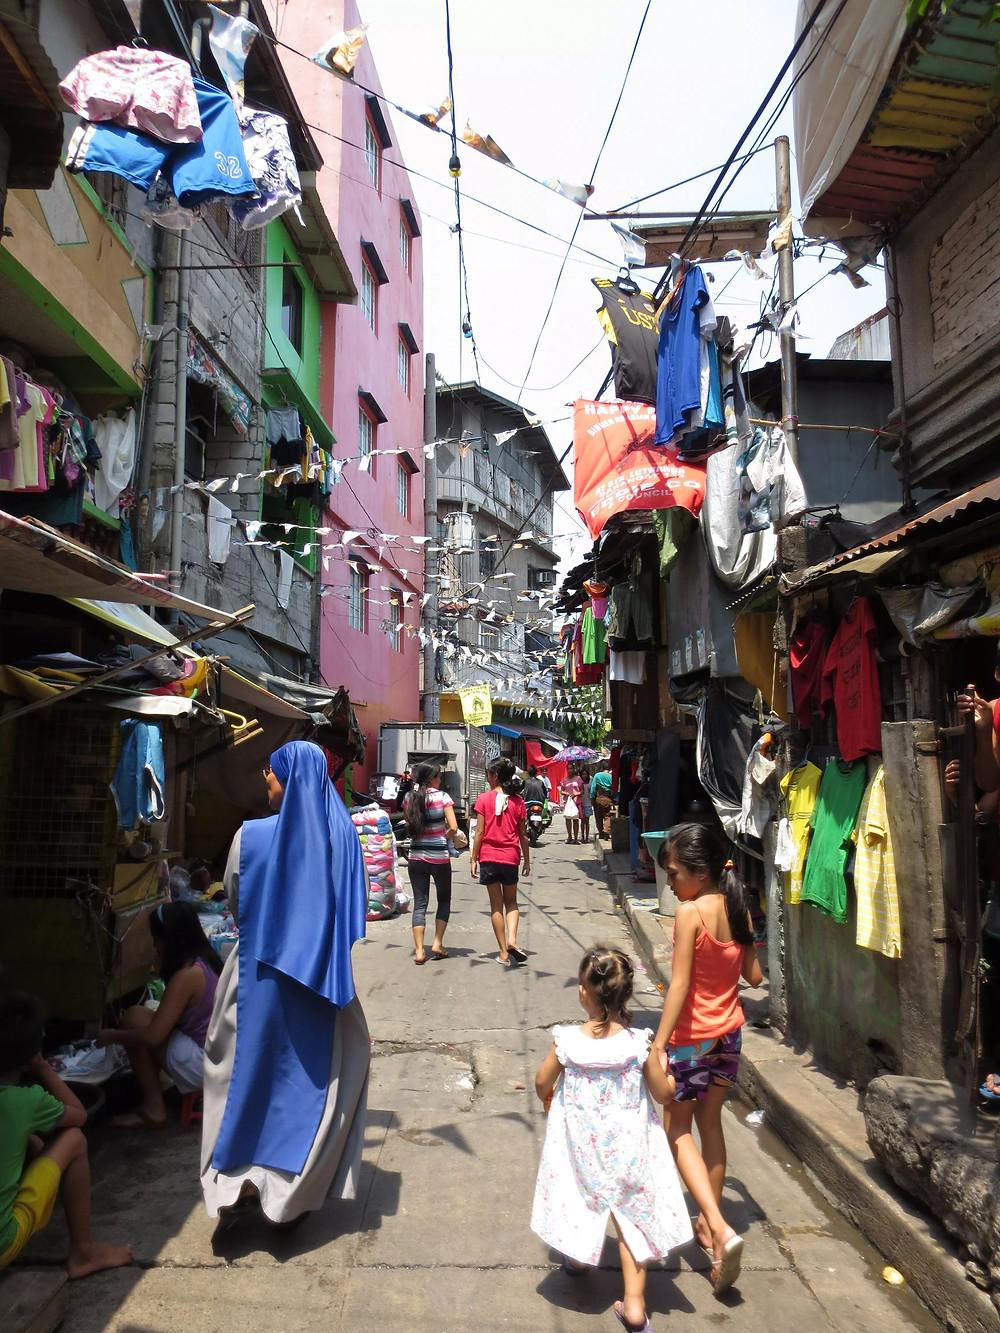 A nun walking in an alleyway in the Philippines.